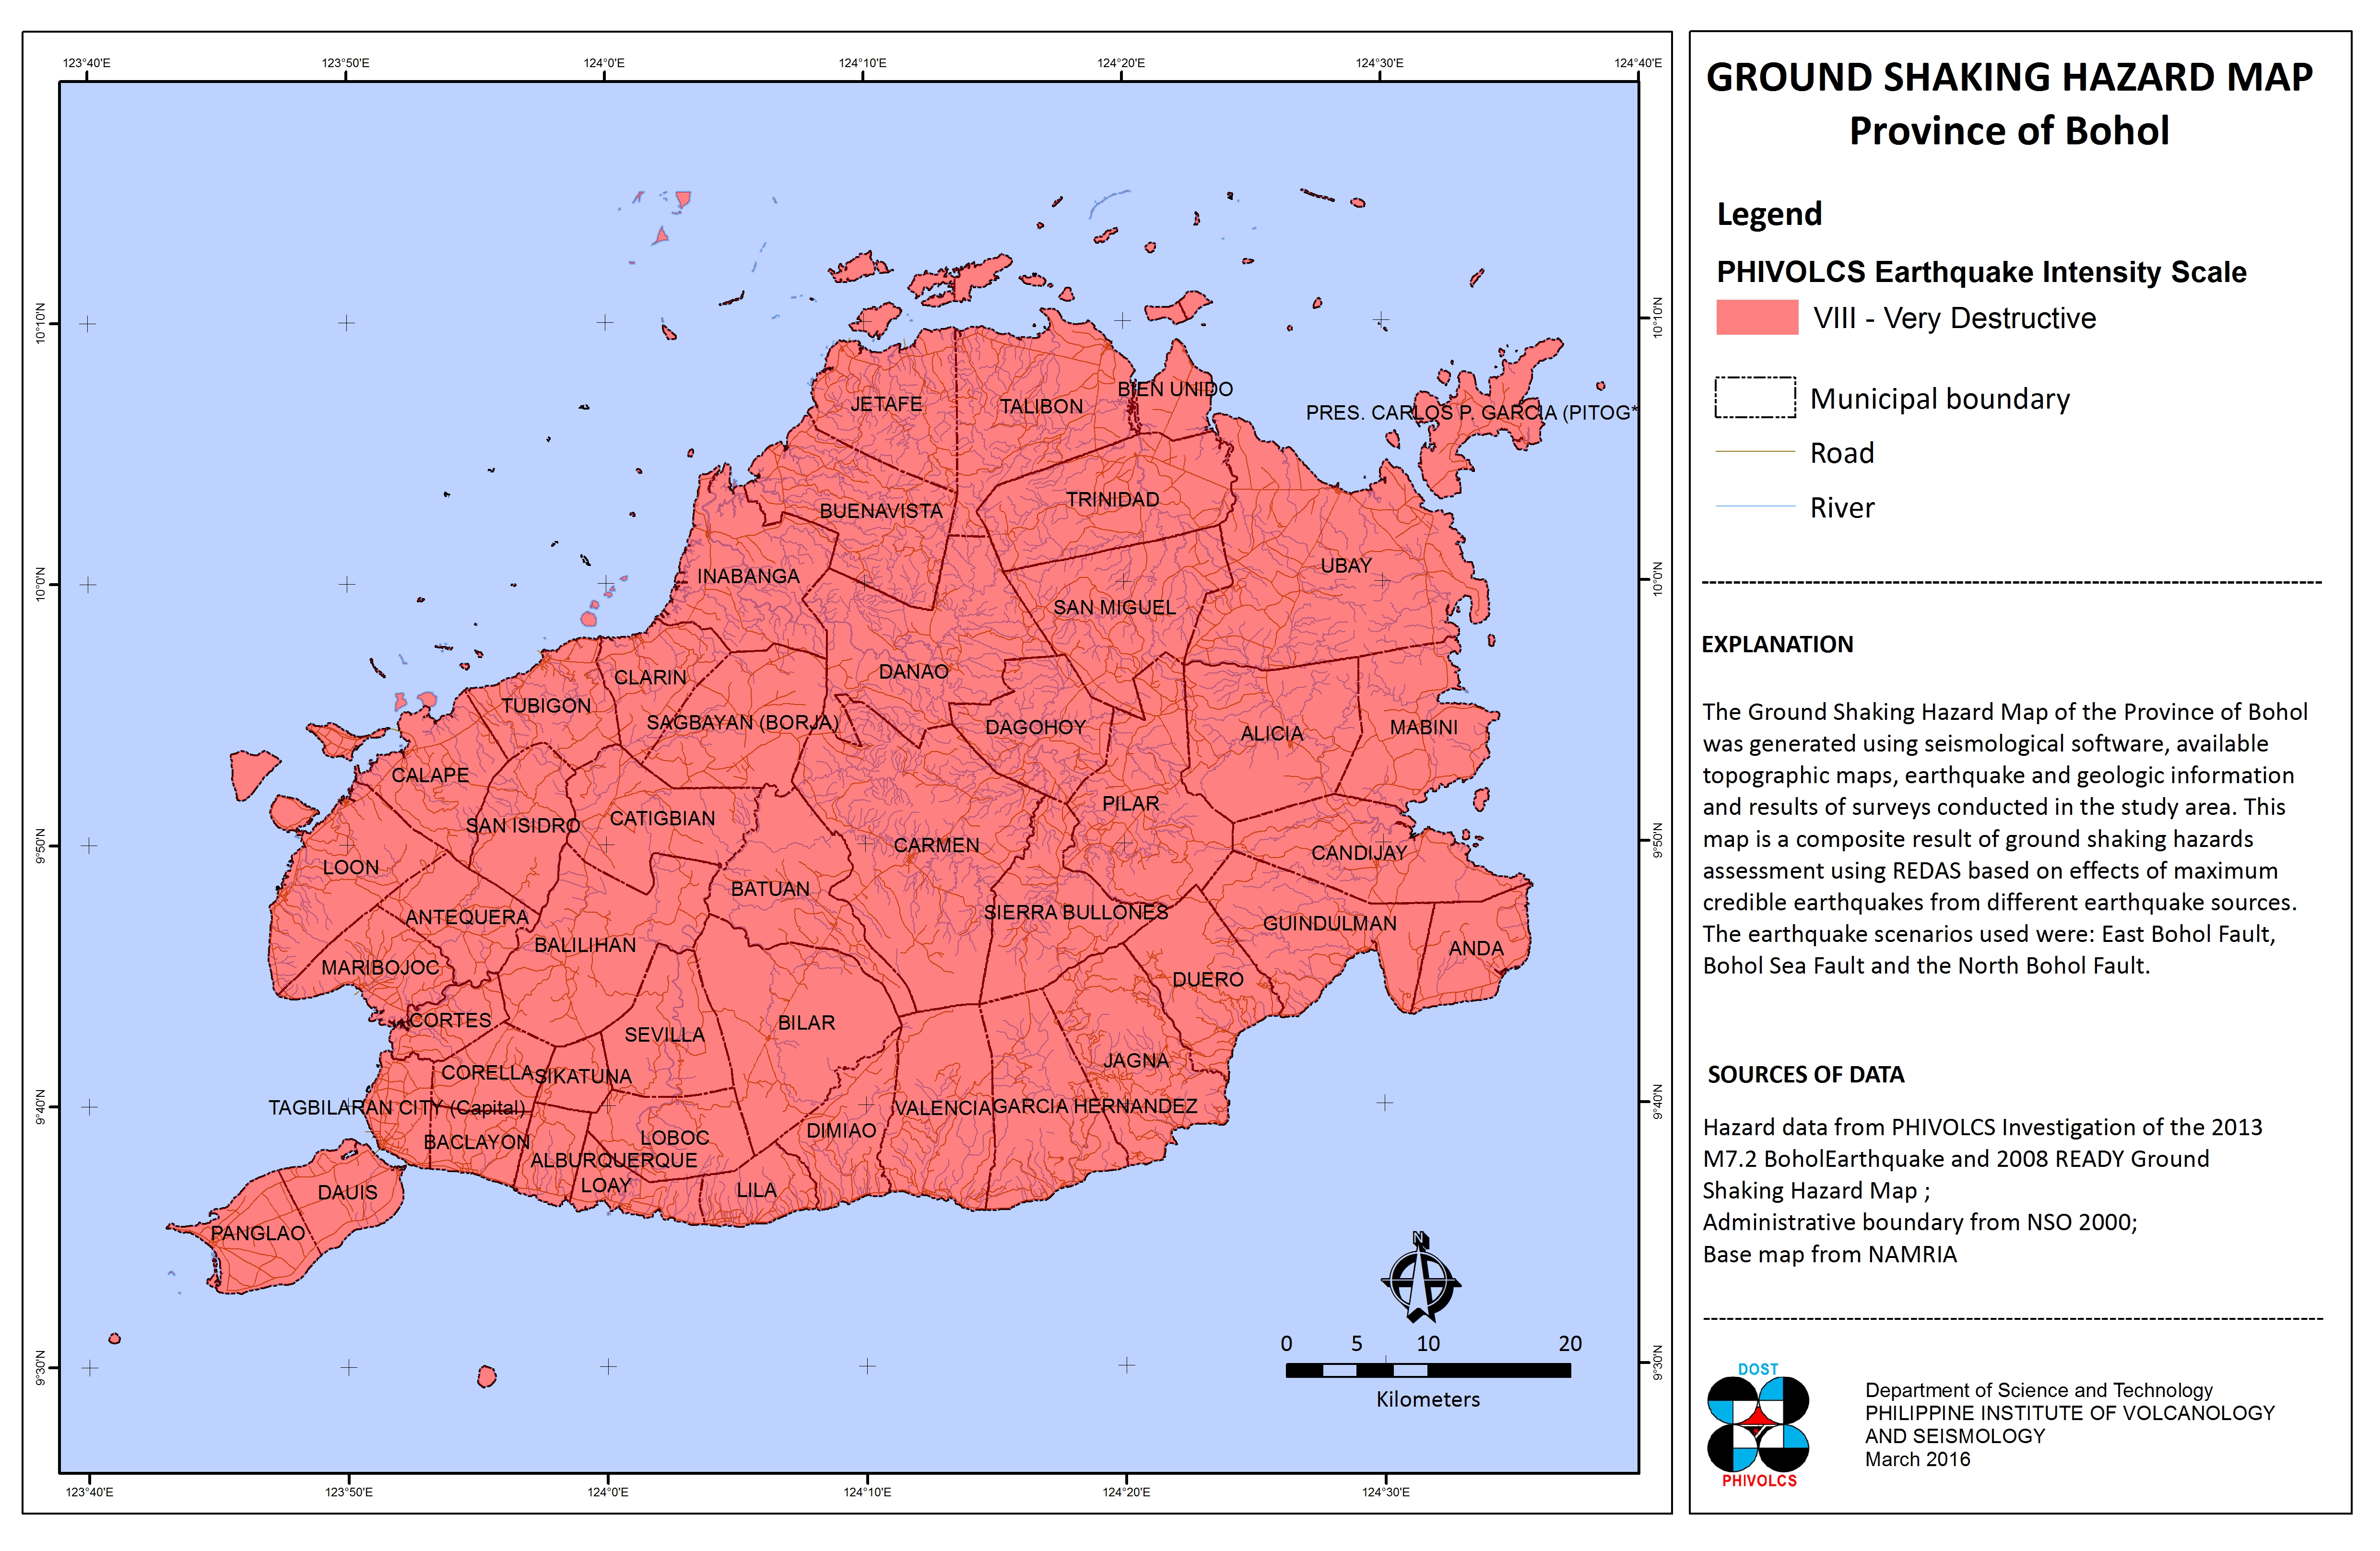 Ground Shaking Hazard Map, 2016 update